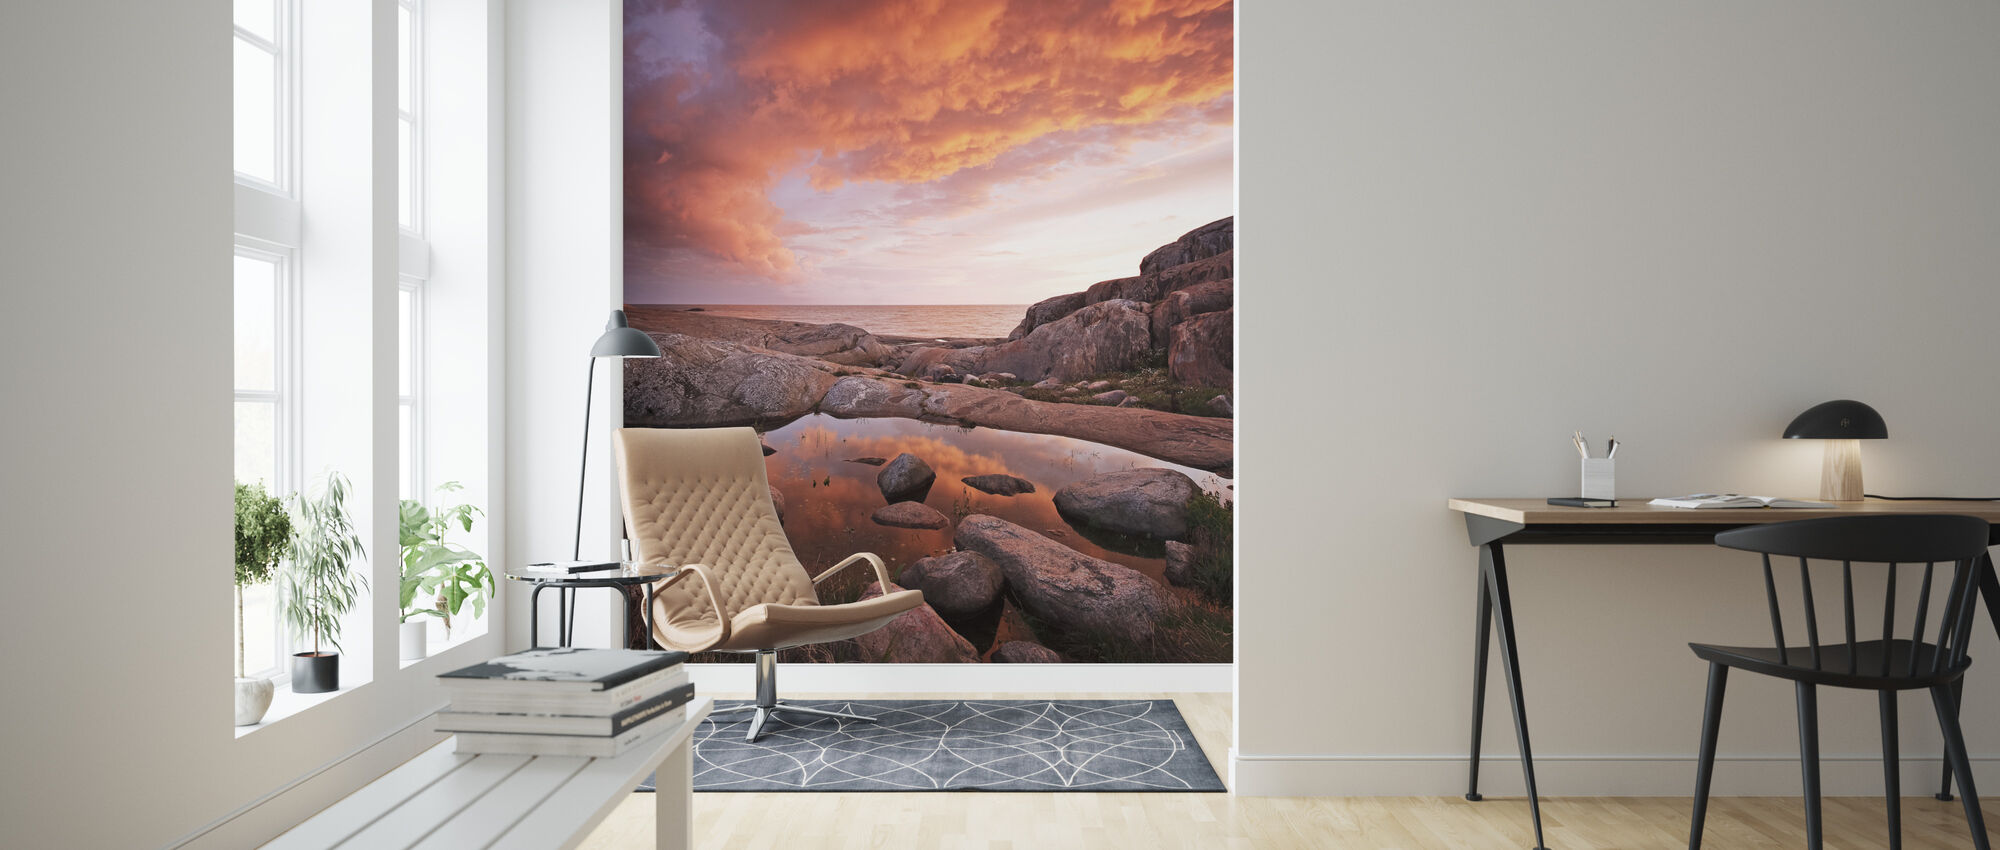 Fiery Clouds at Sea - Wallpaper - Living Room